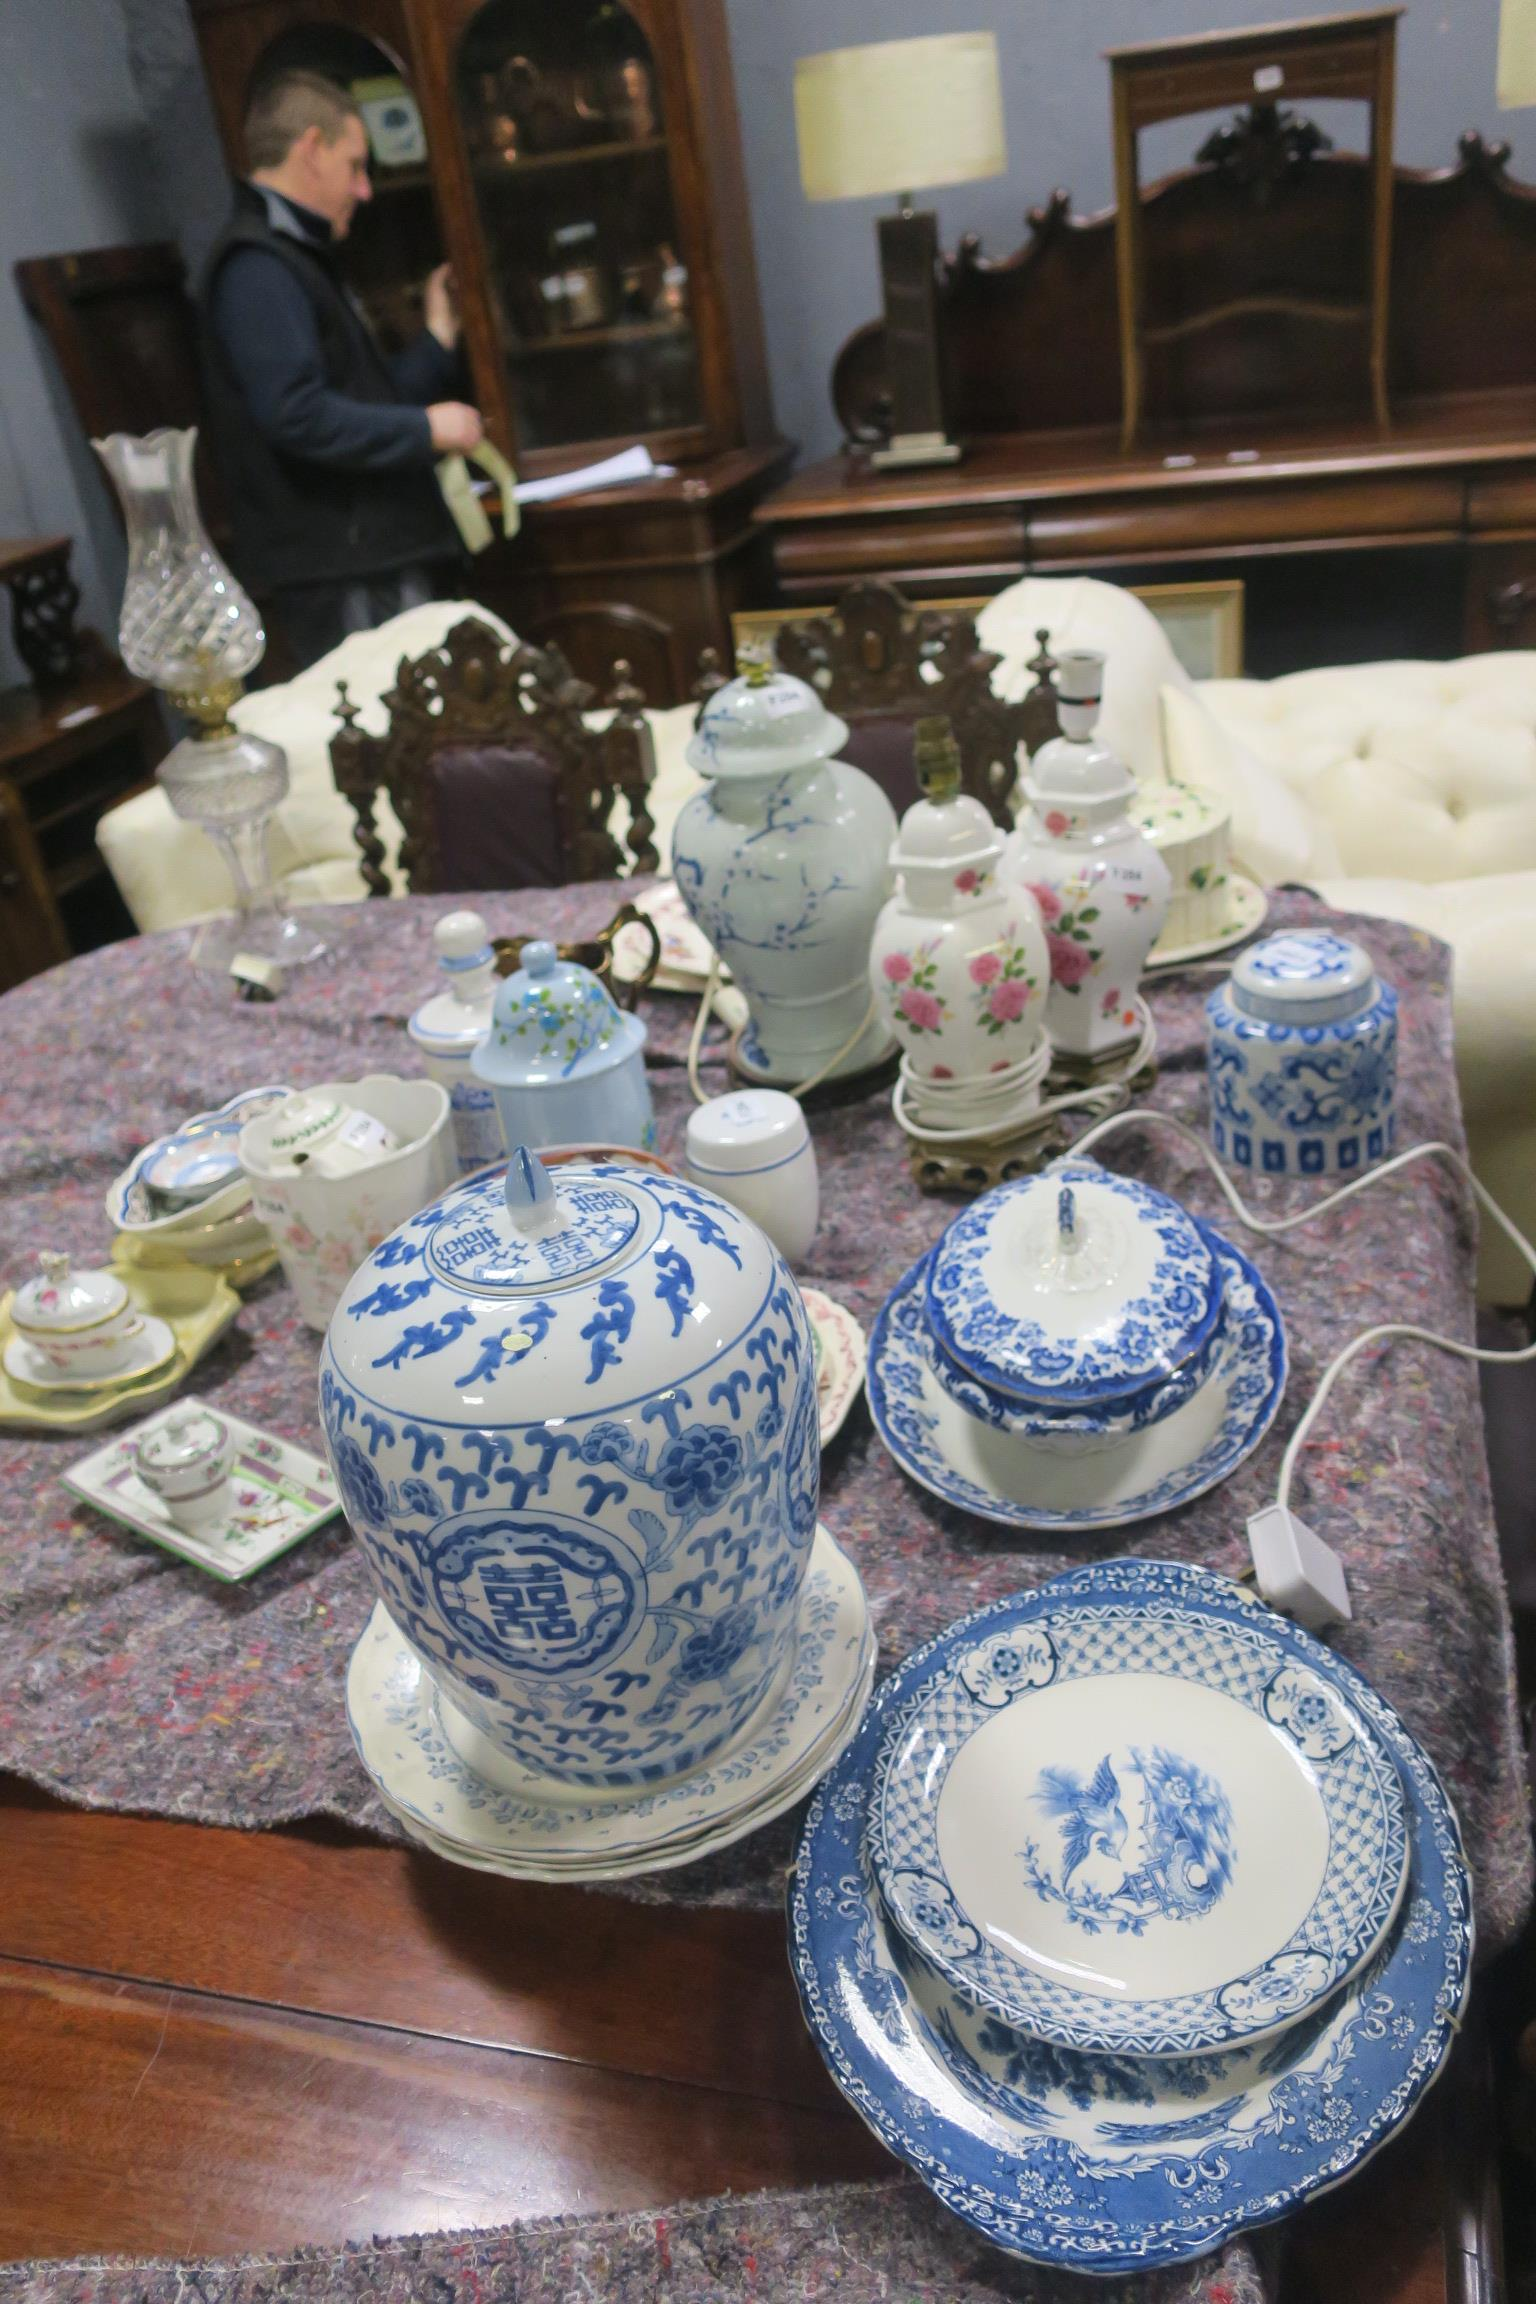 Lot 145 - A COLLECTION OF CHINA, to include Mason's Ironstone platters, lustre jug, blue and white lidded jar,